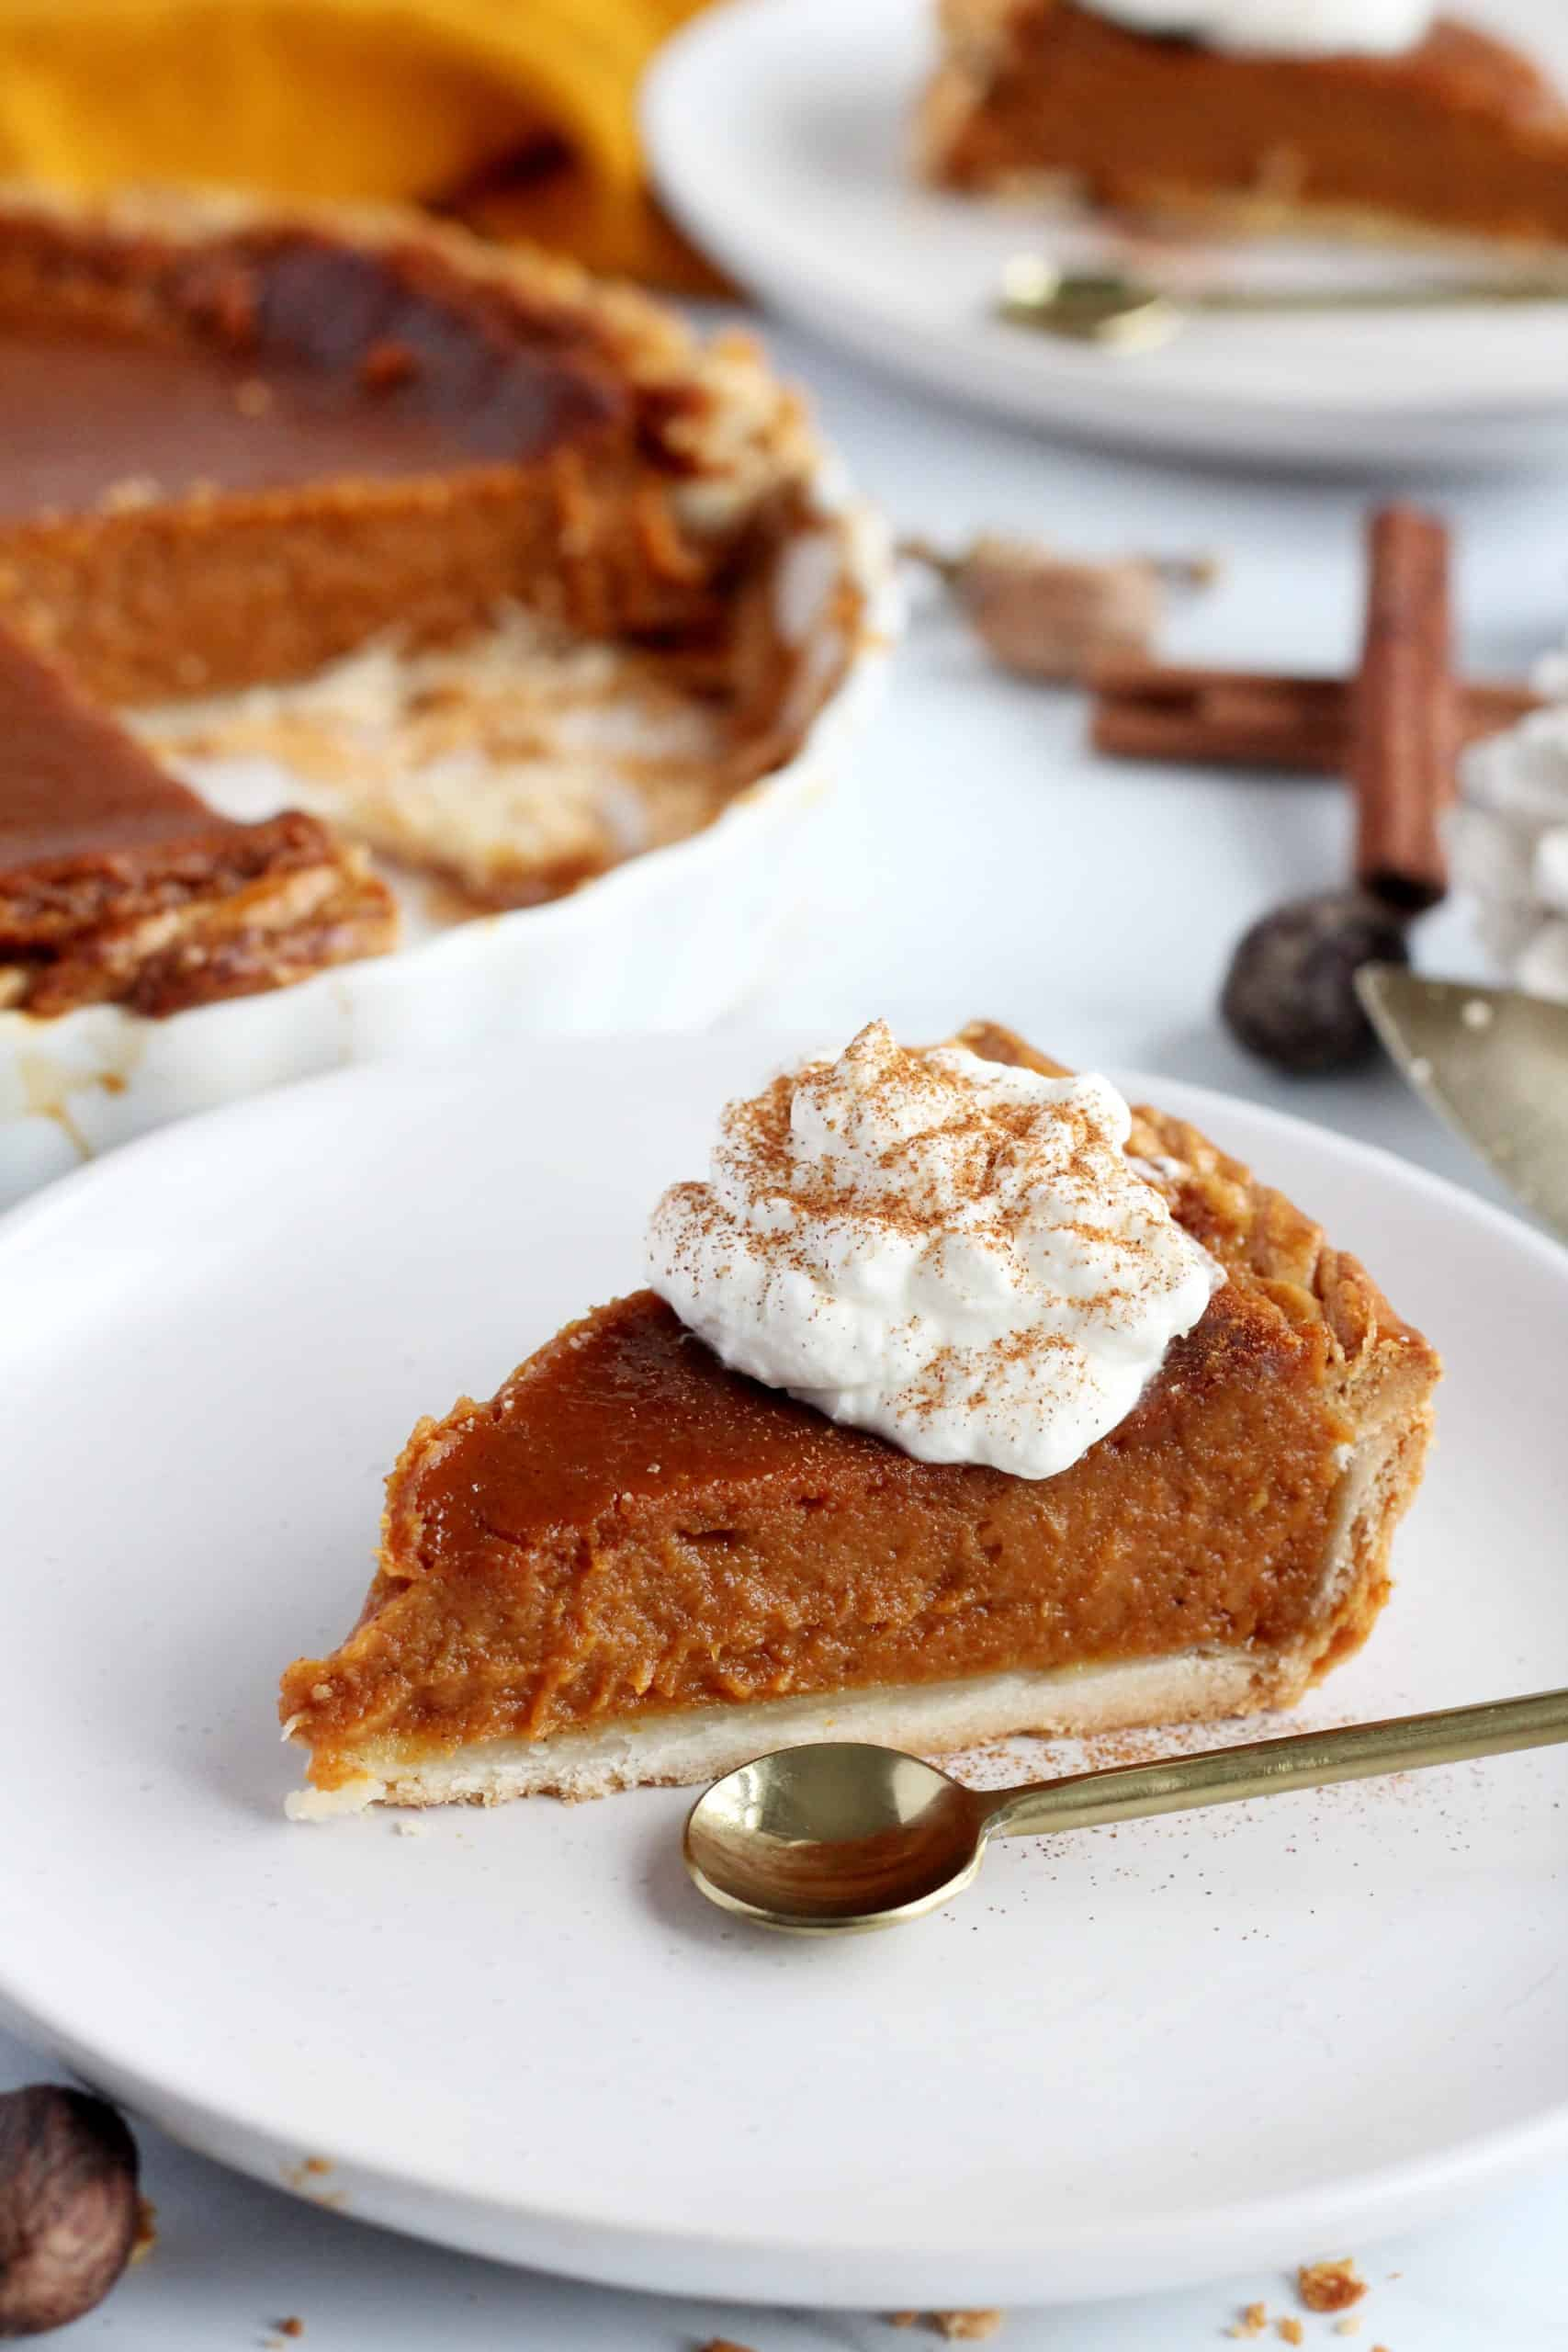 the close up of slice of pumpkin pie